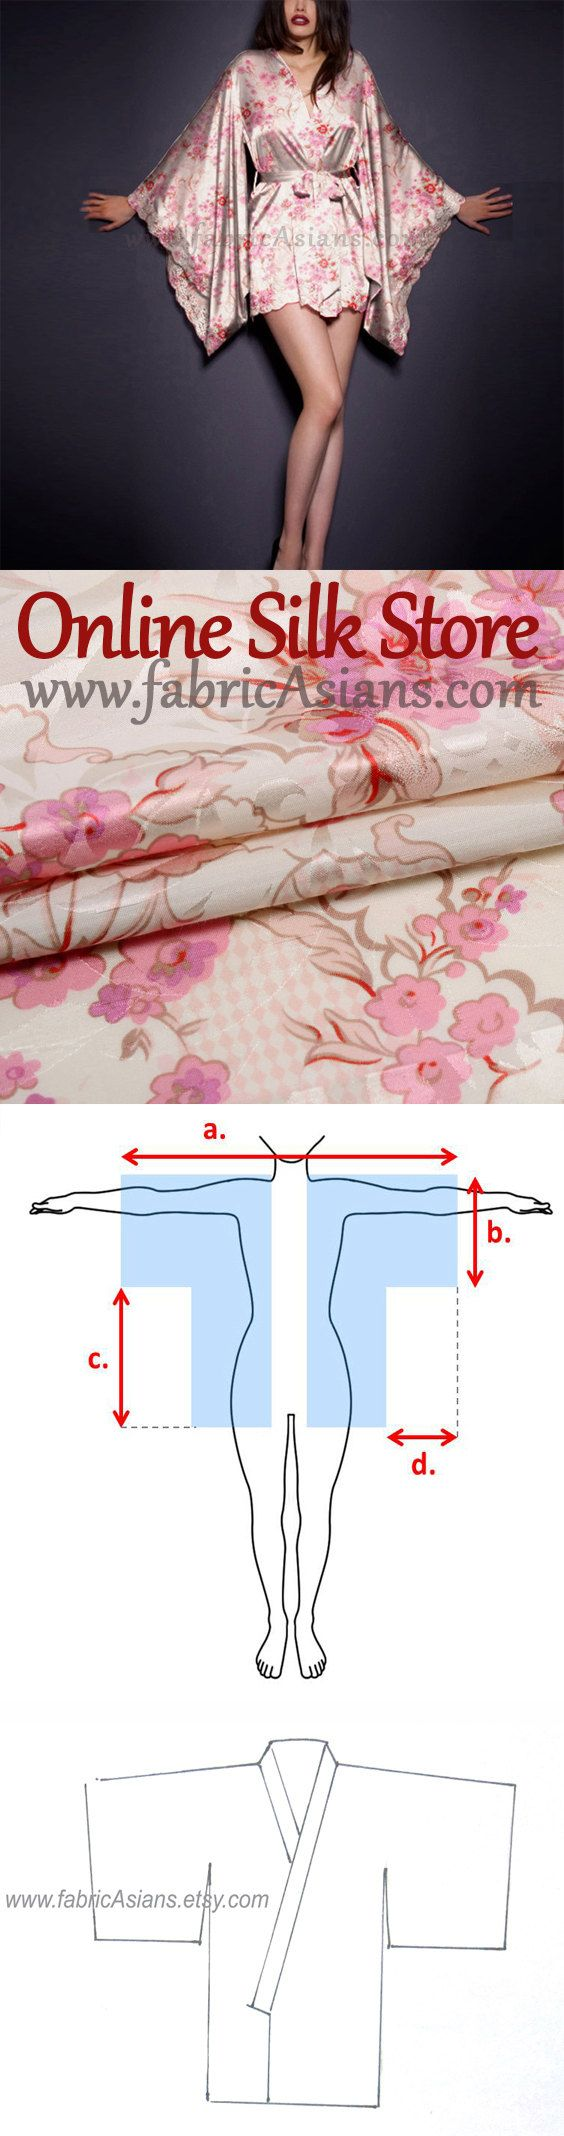 Free Kimono Sewing Pattern. SALE Cherry Blossom Fabric. Pink Floral Silk. by fabricAsians